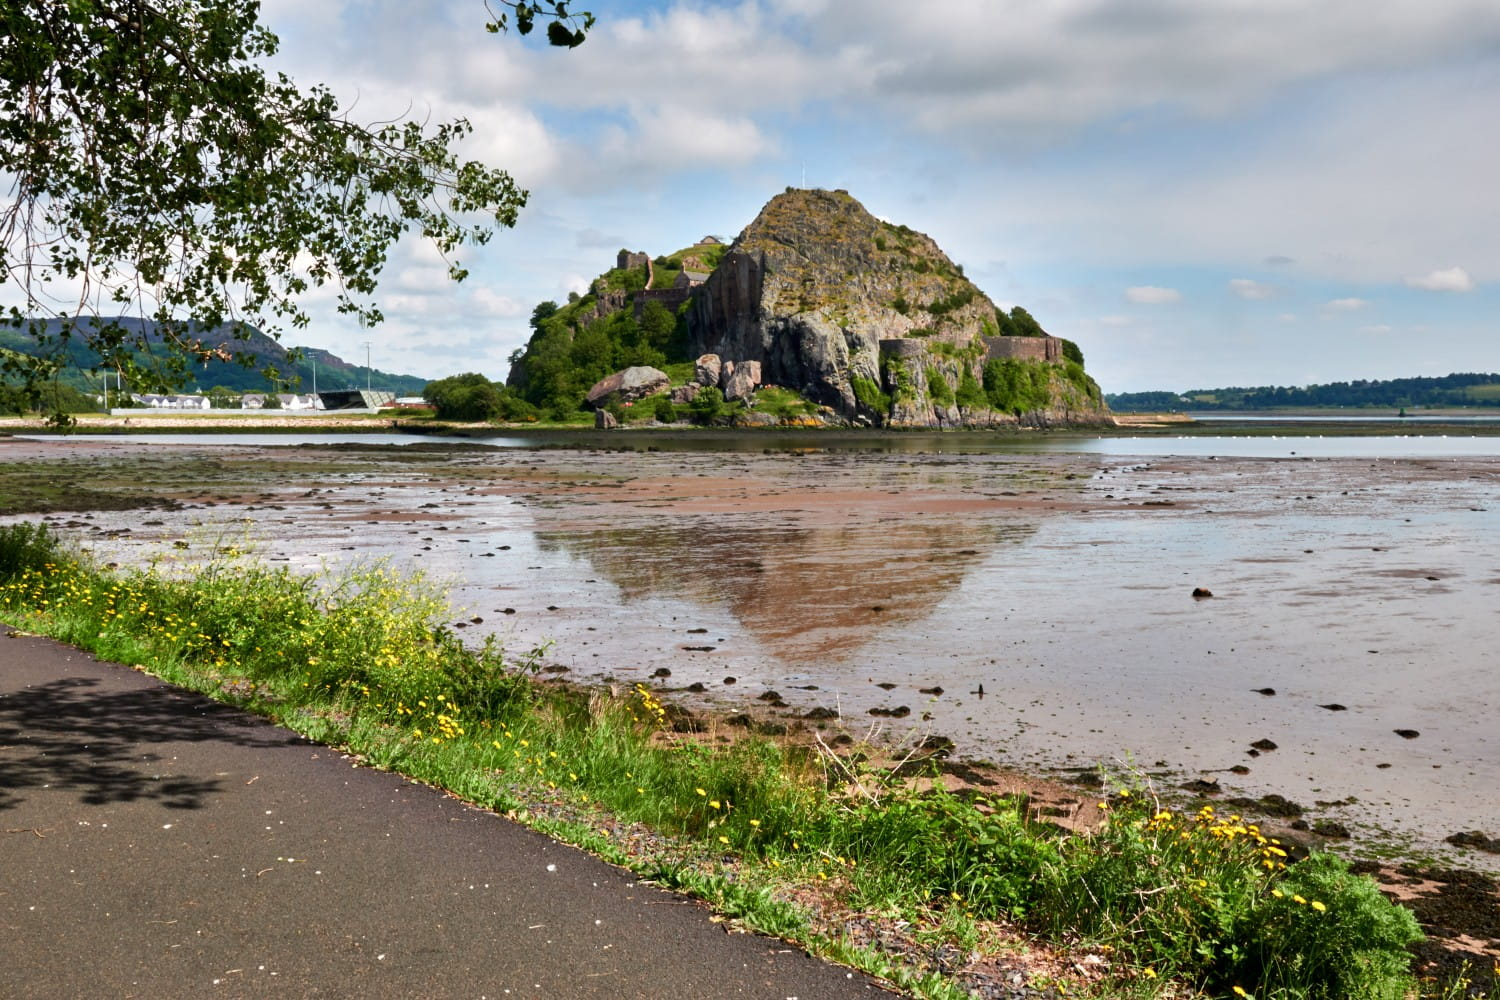 The troops were chased all the way to Dumbarton Castle